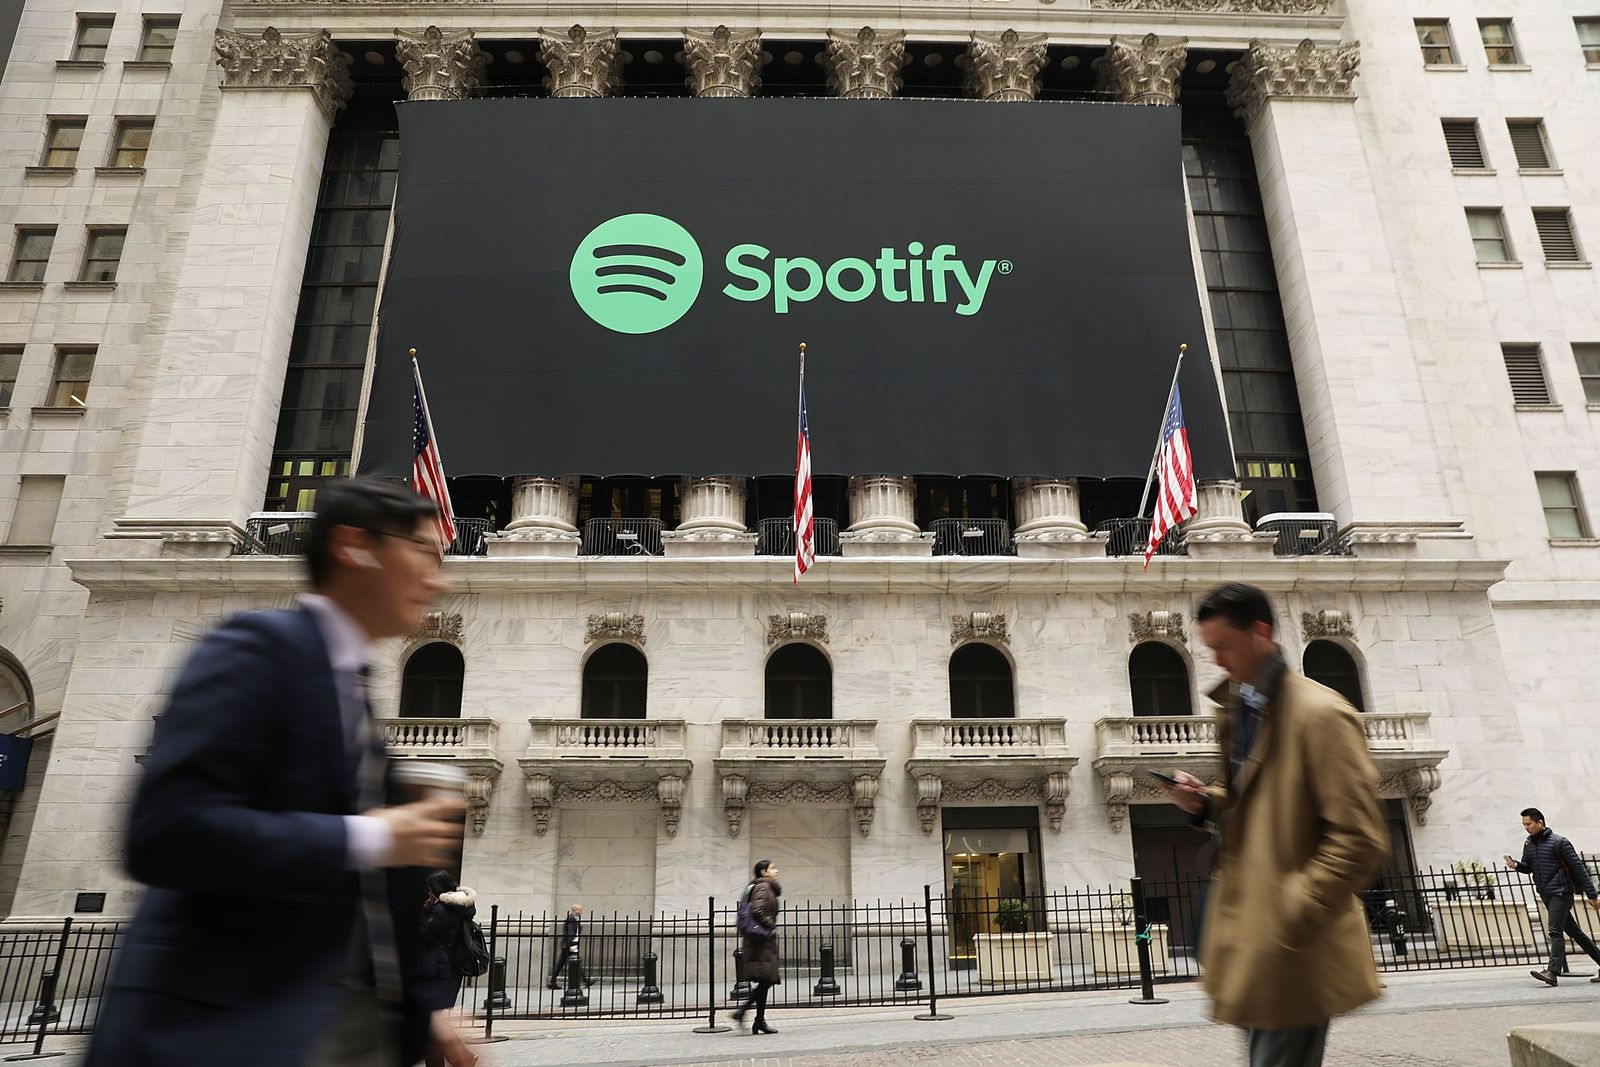 US-MUSIC-STREAMING-SERVICE-SPOTIFY-GOES-PUBLIC-ON-THE-NEW-YORK-S